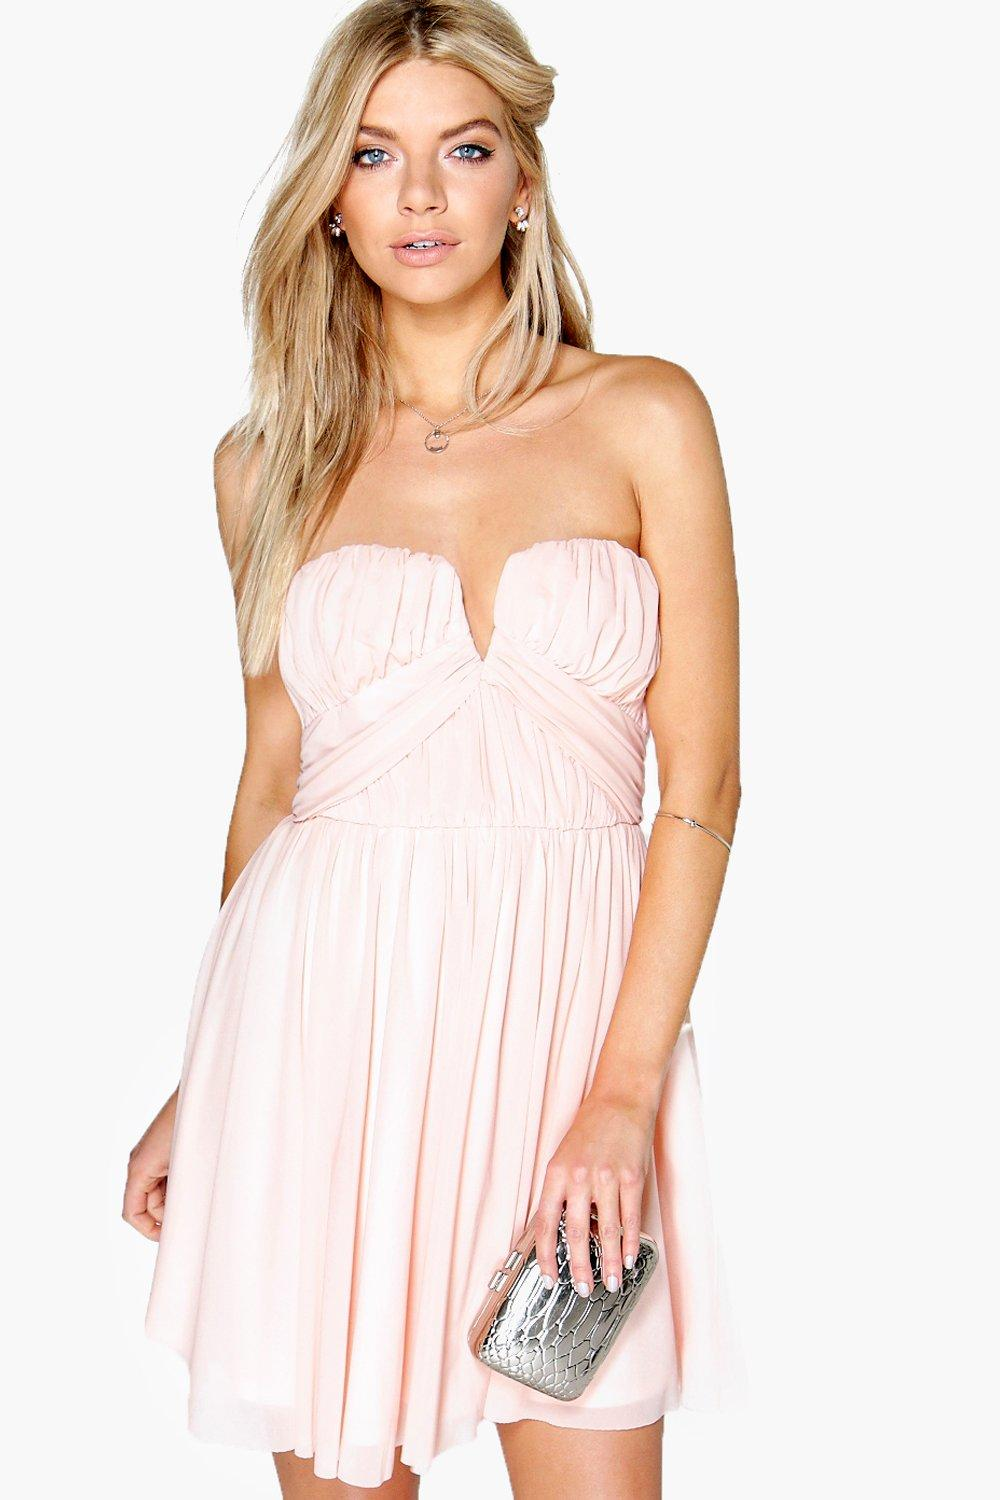 Becky Mesh Rouched Plunge Prom Dress - blush